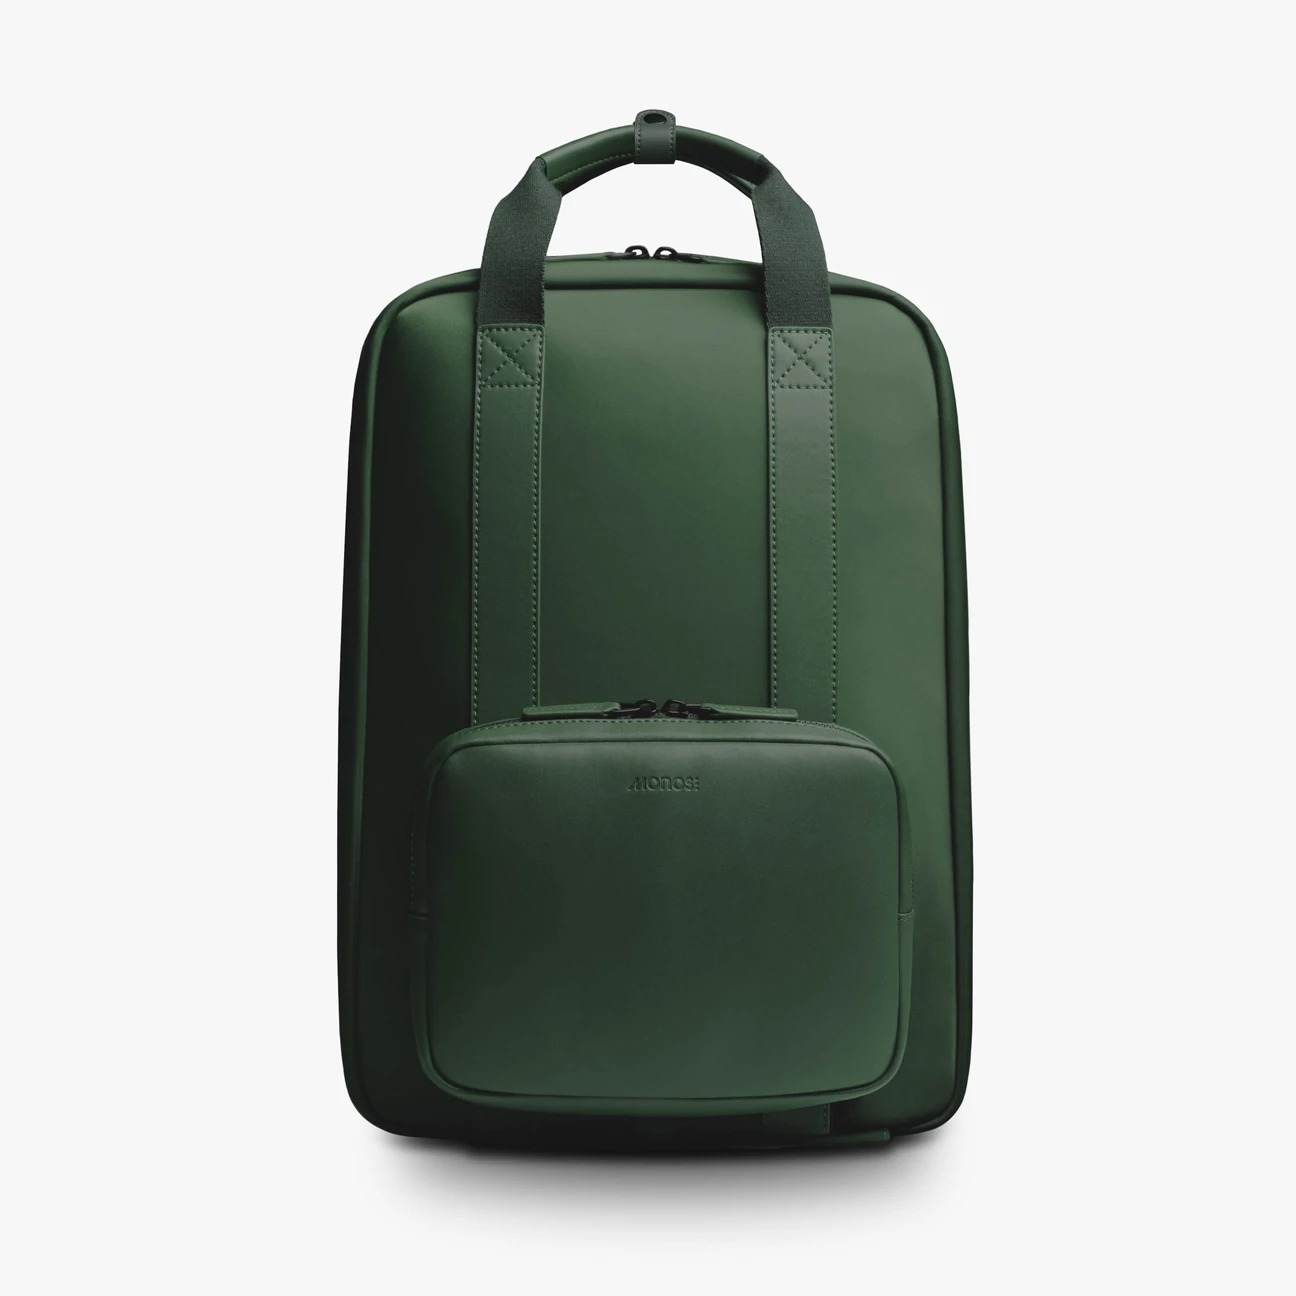 Monos Metro Backpack (in dark green)